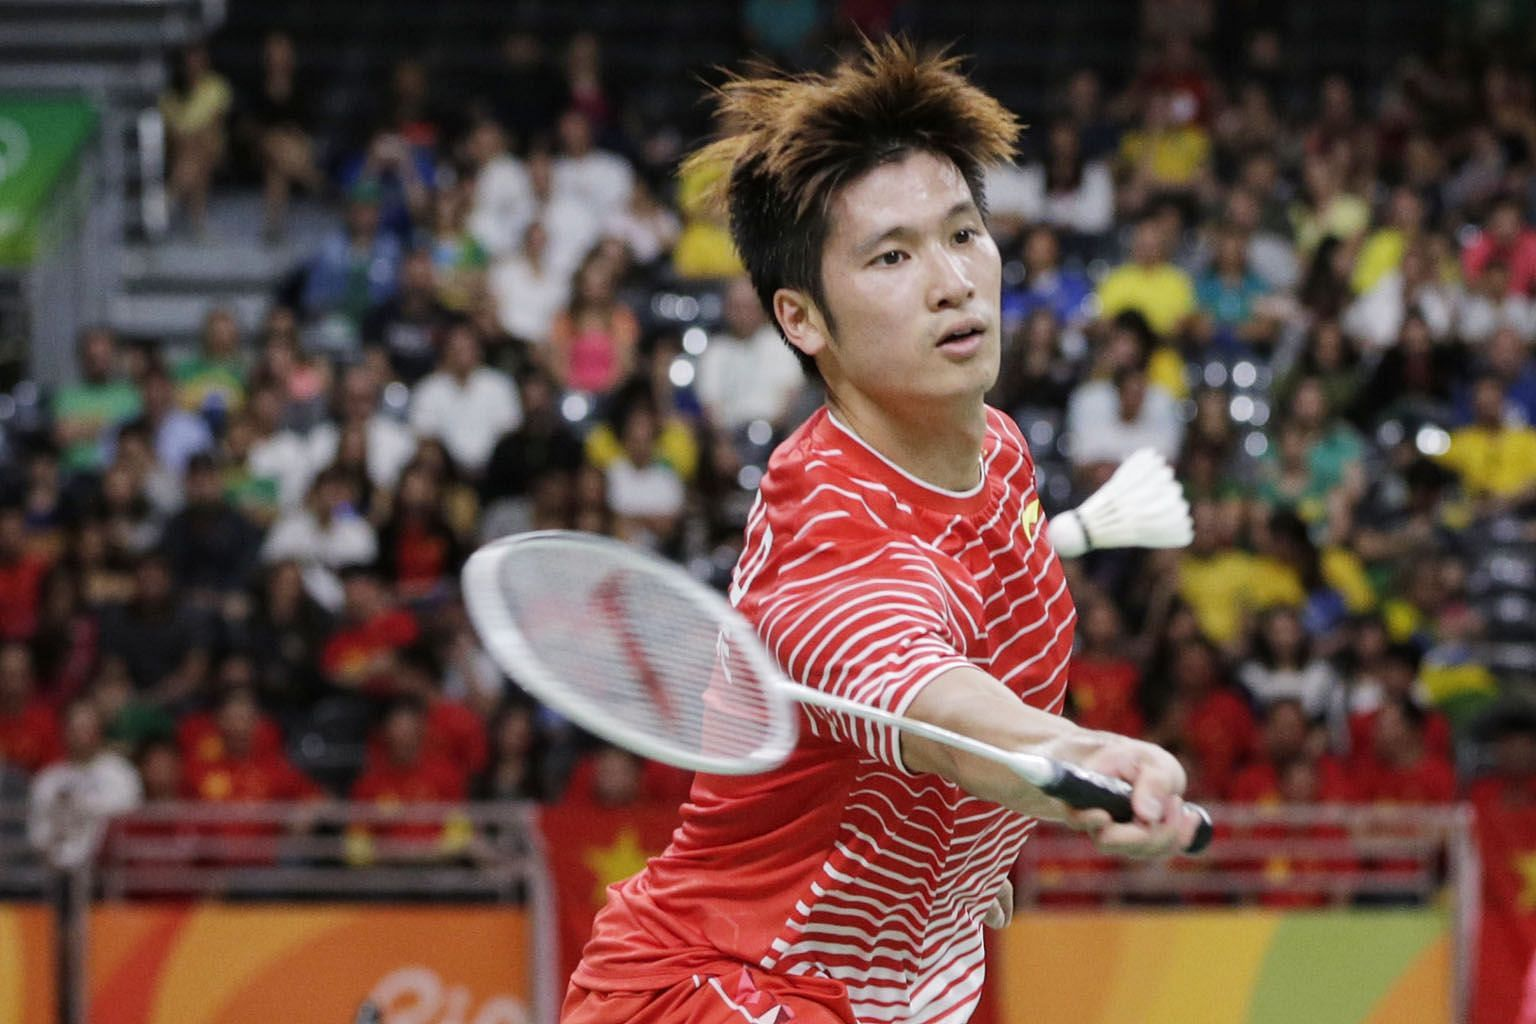 Derek Wong, the former Singapore badminton player and Olympian, is employed full-time at consultancy firm Deloitte Singapore.